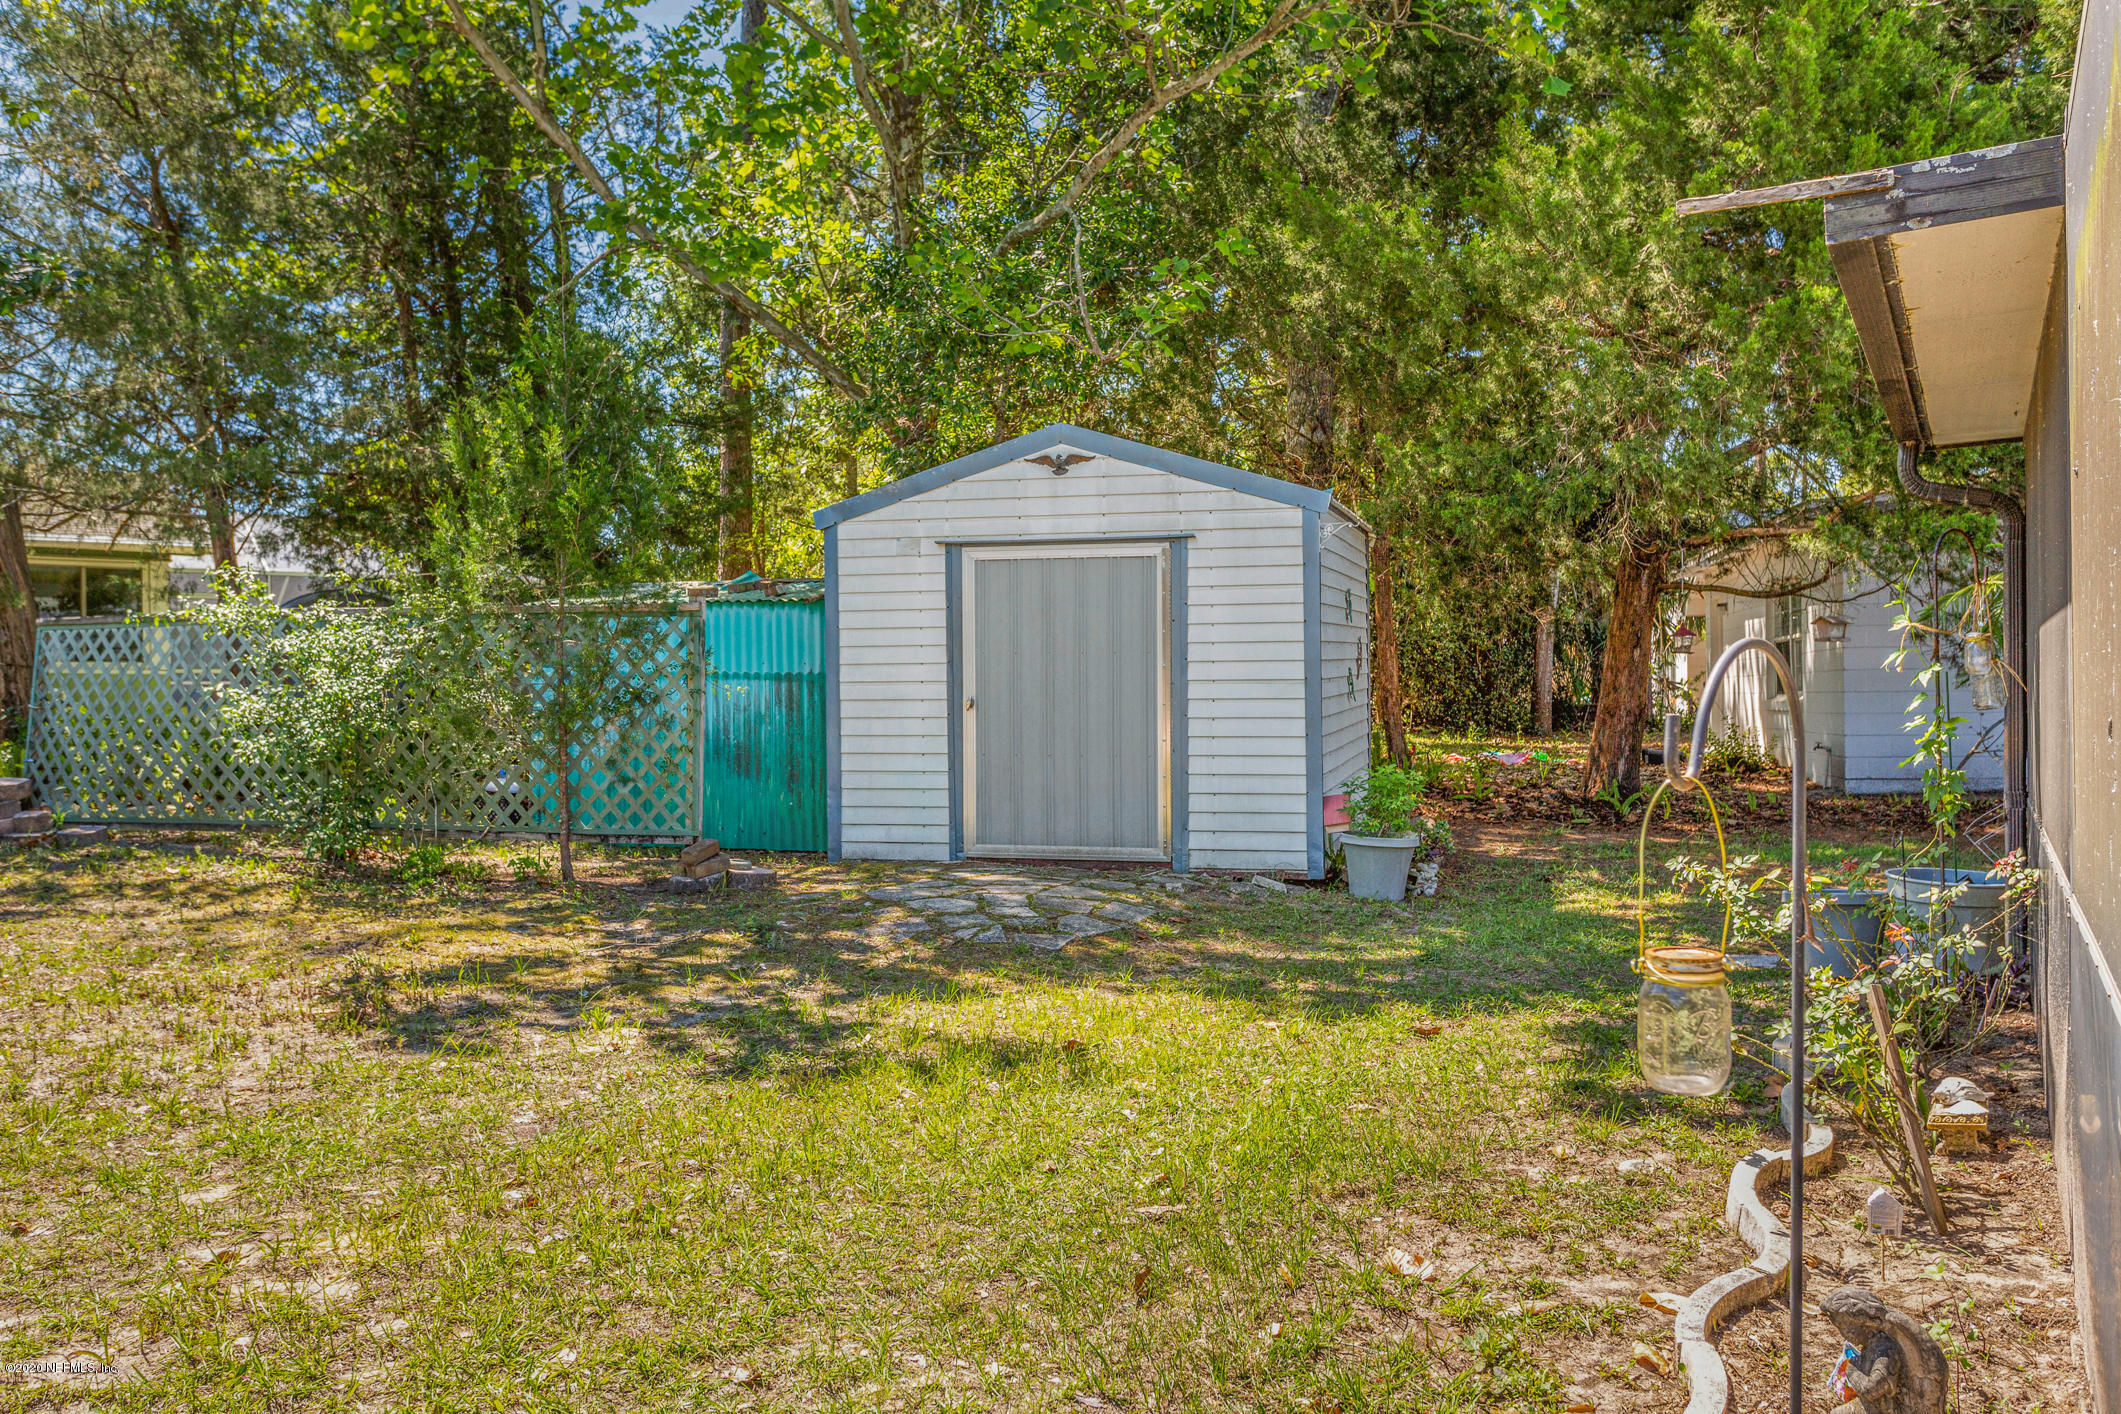 381 TRAVINO, ST AUGUSTINE, FLORIDA 32086, 3 Bedrooms Bedrooms, ,2 BathroomsBathrooms,Residential,For sale,TRAVINO,1052033